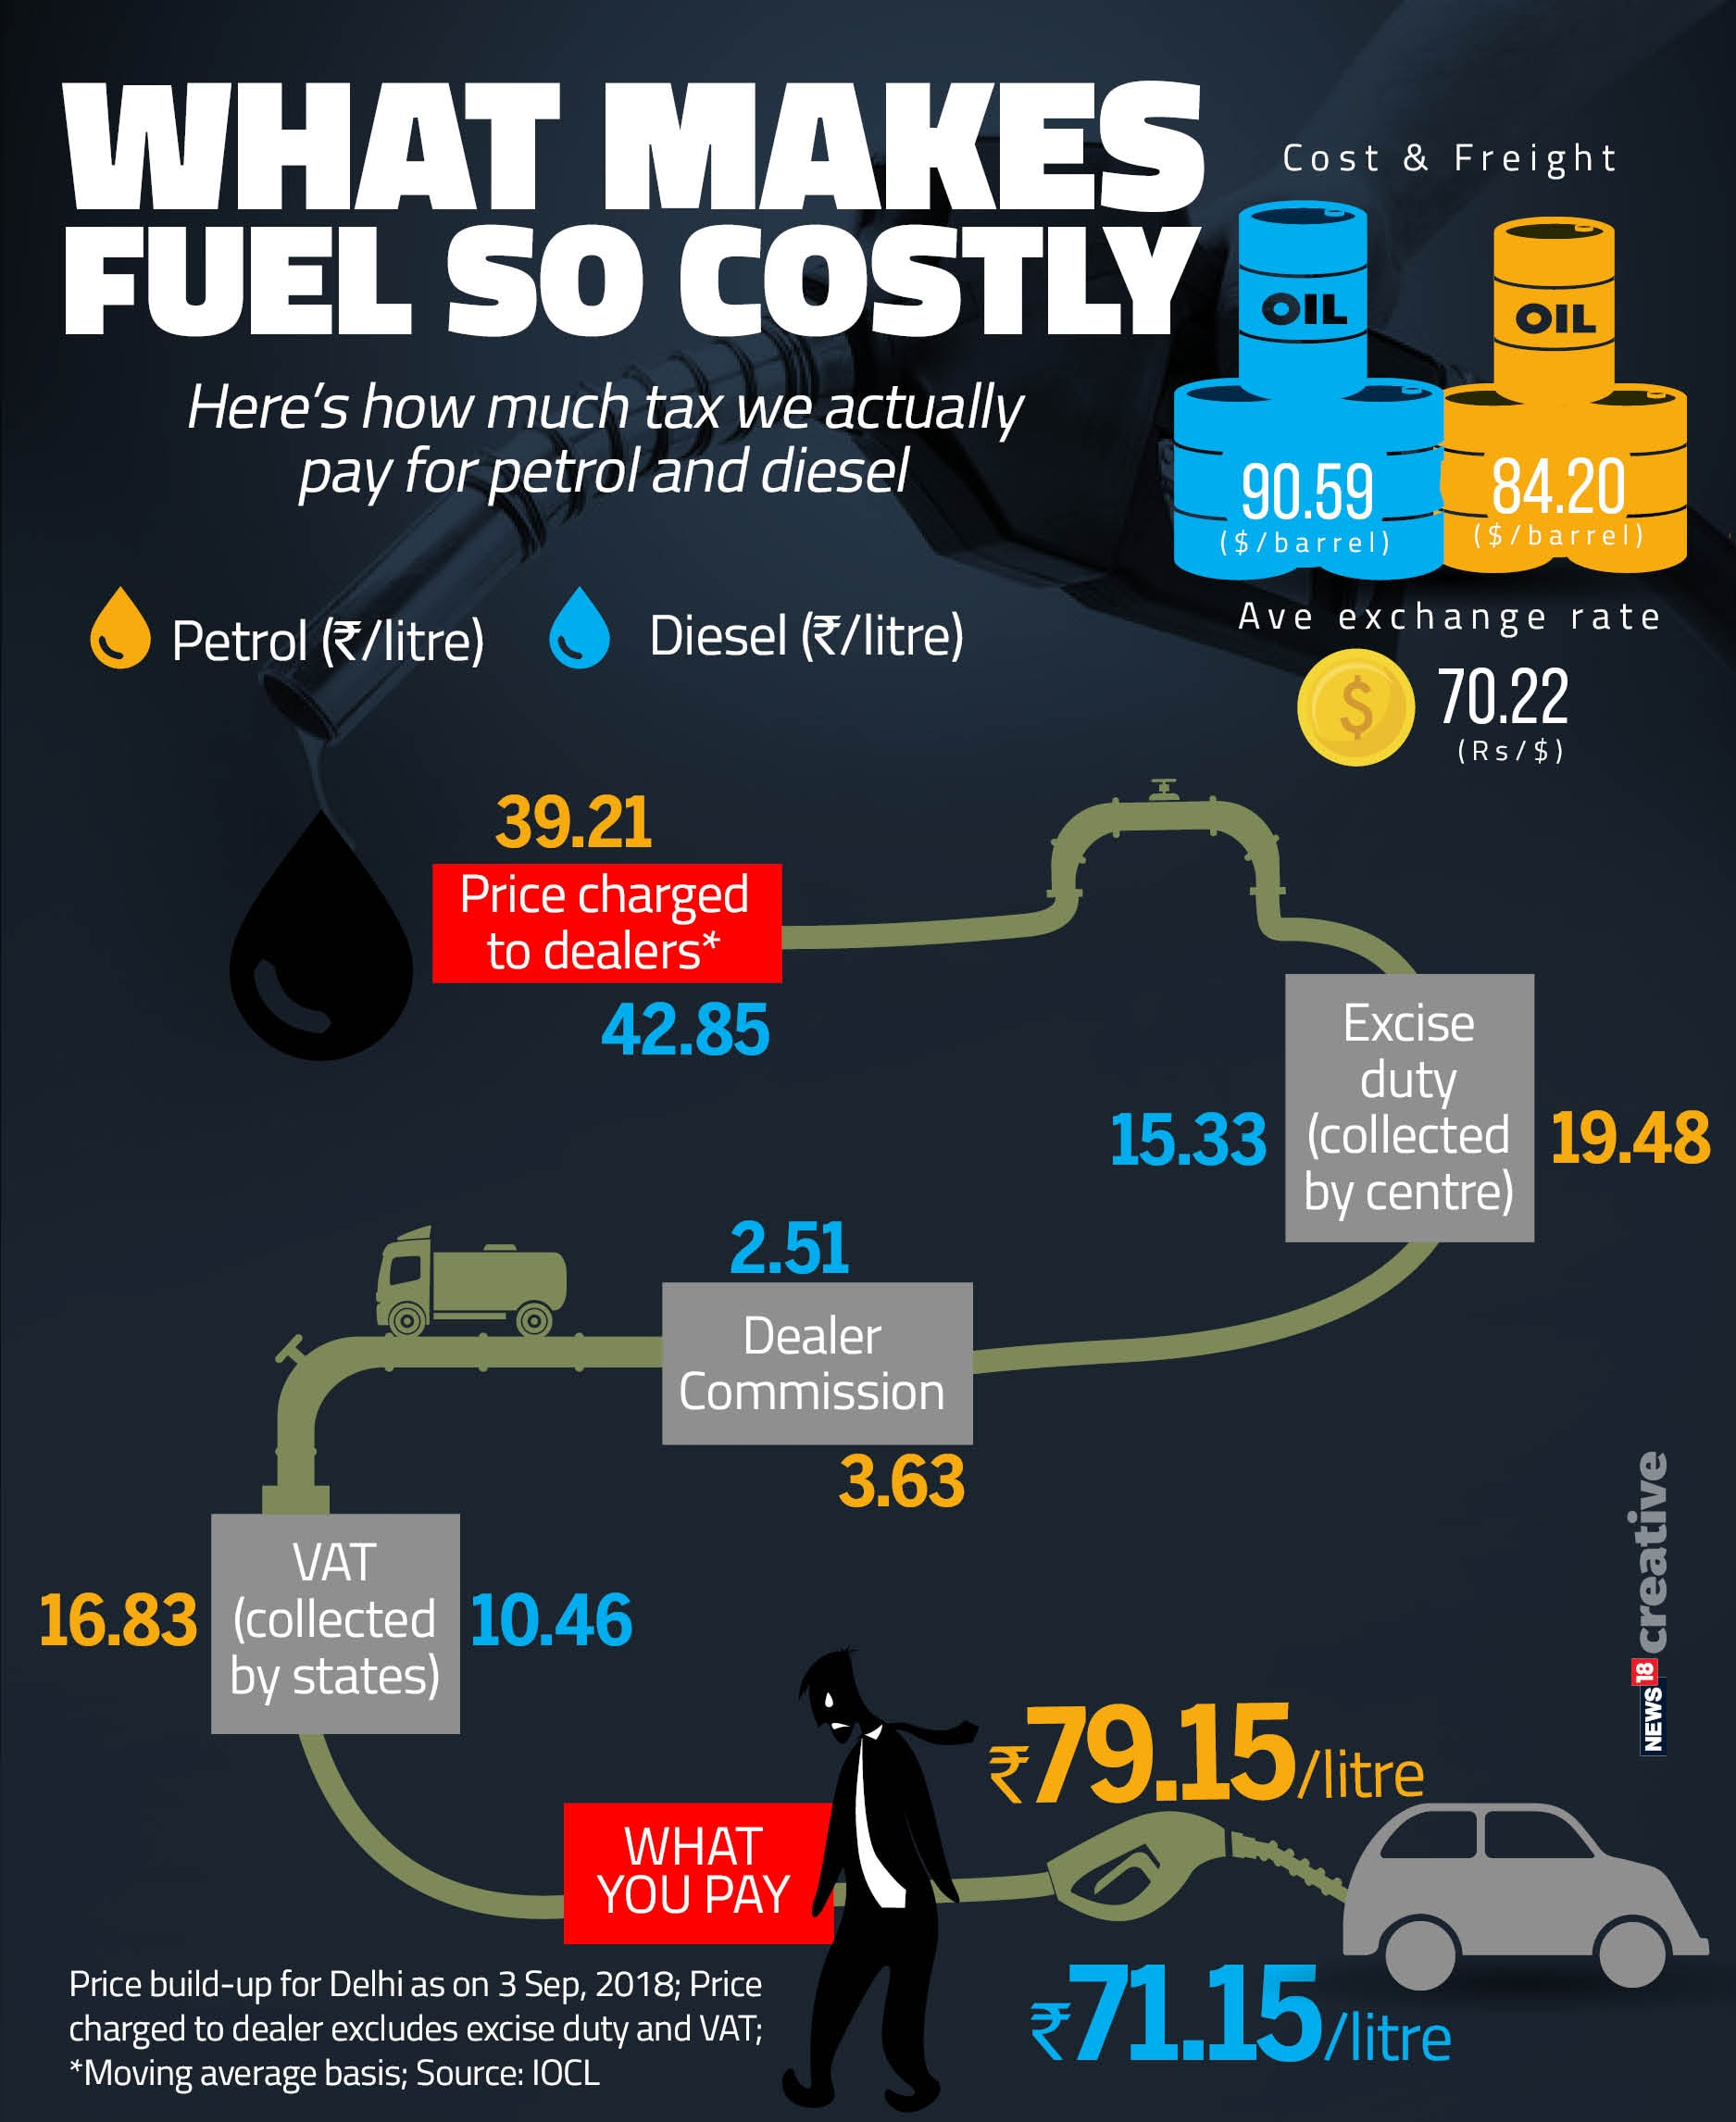 What makes fuel so costly